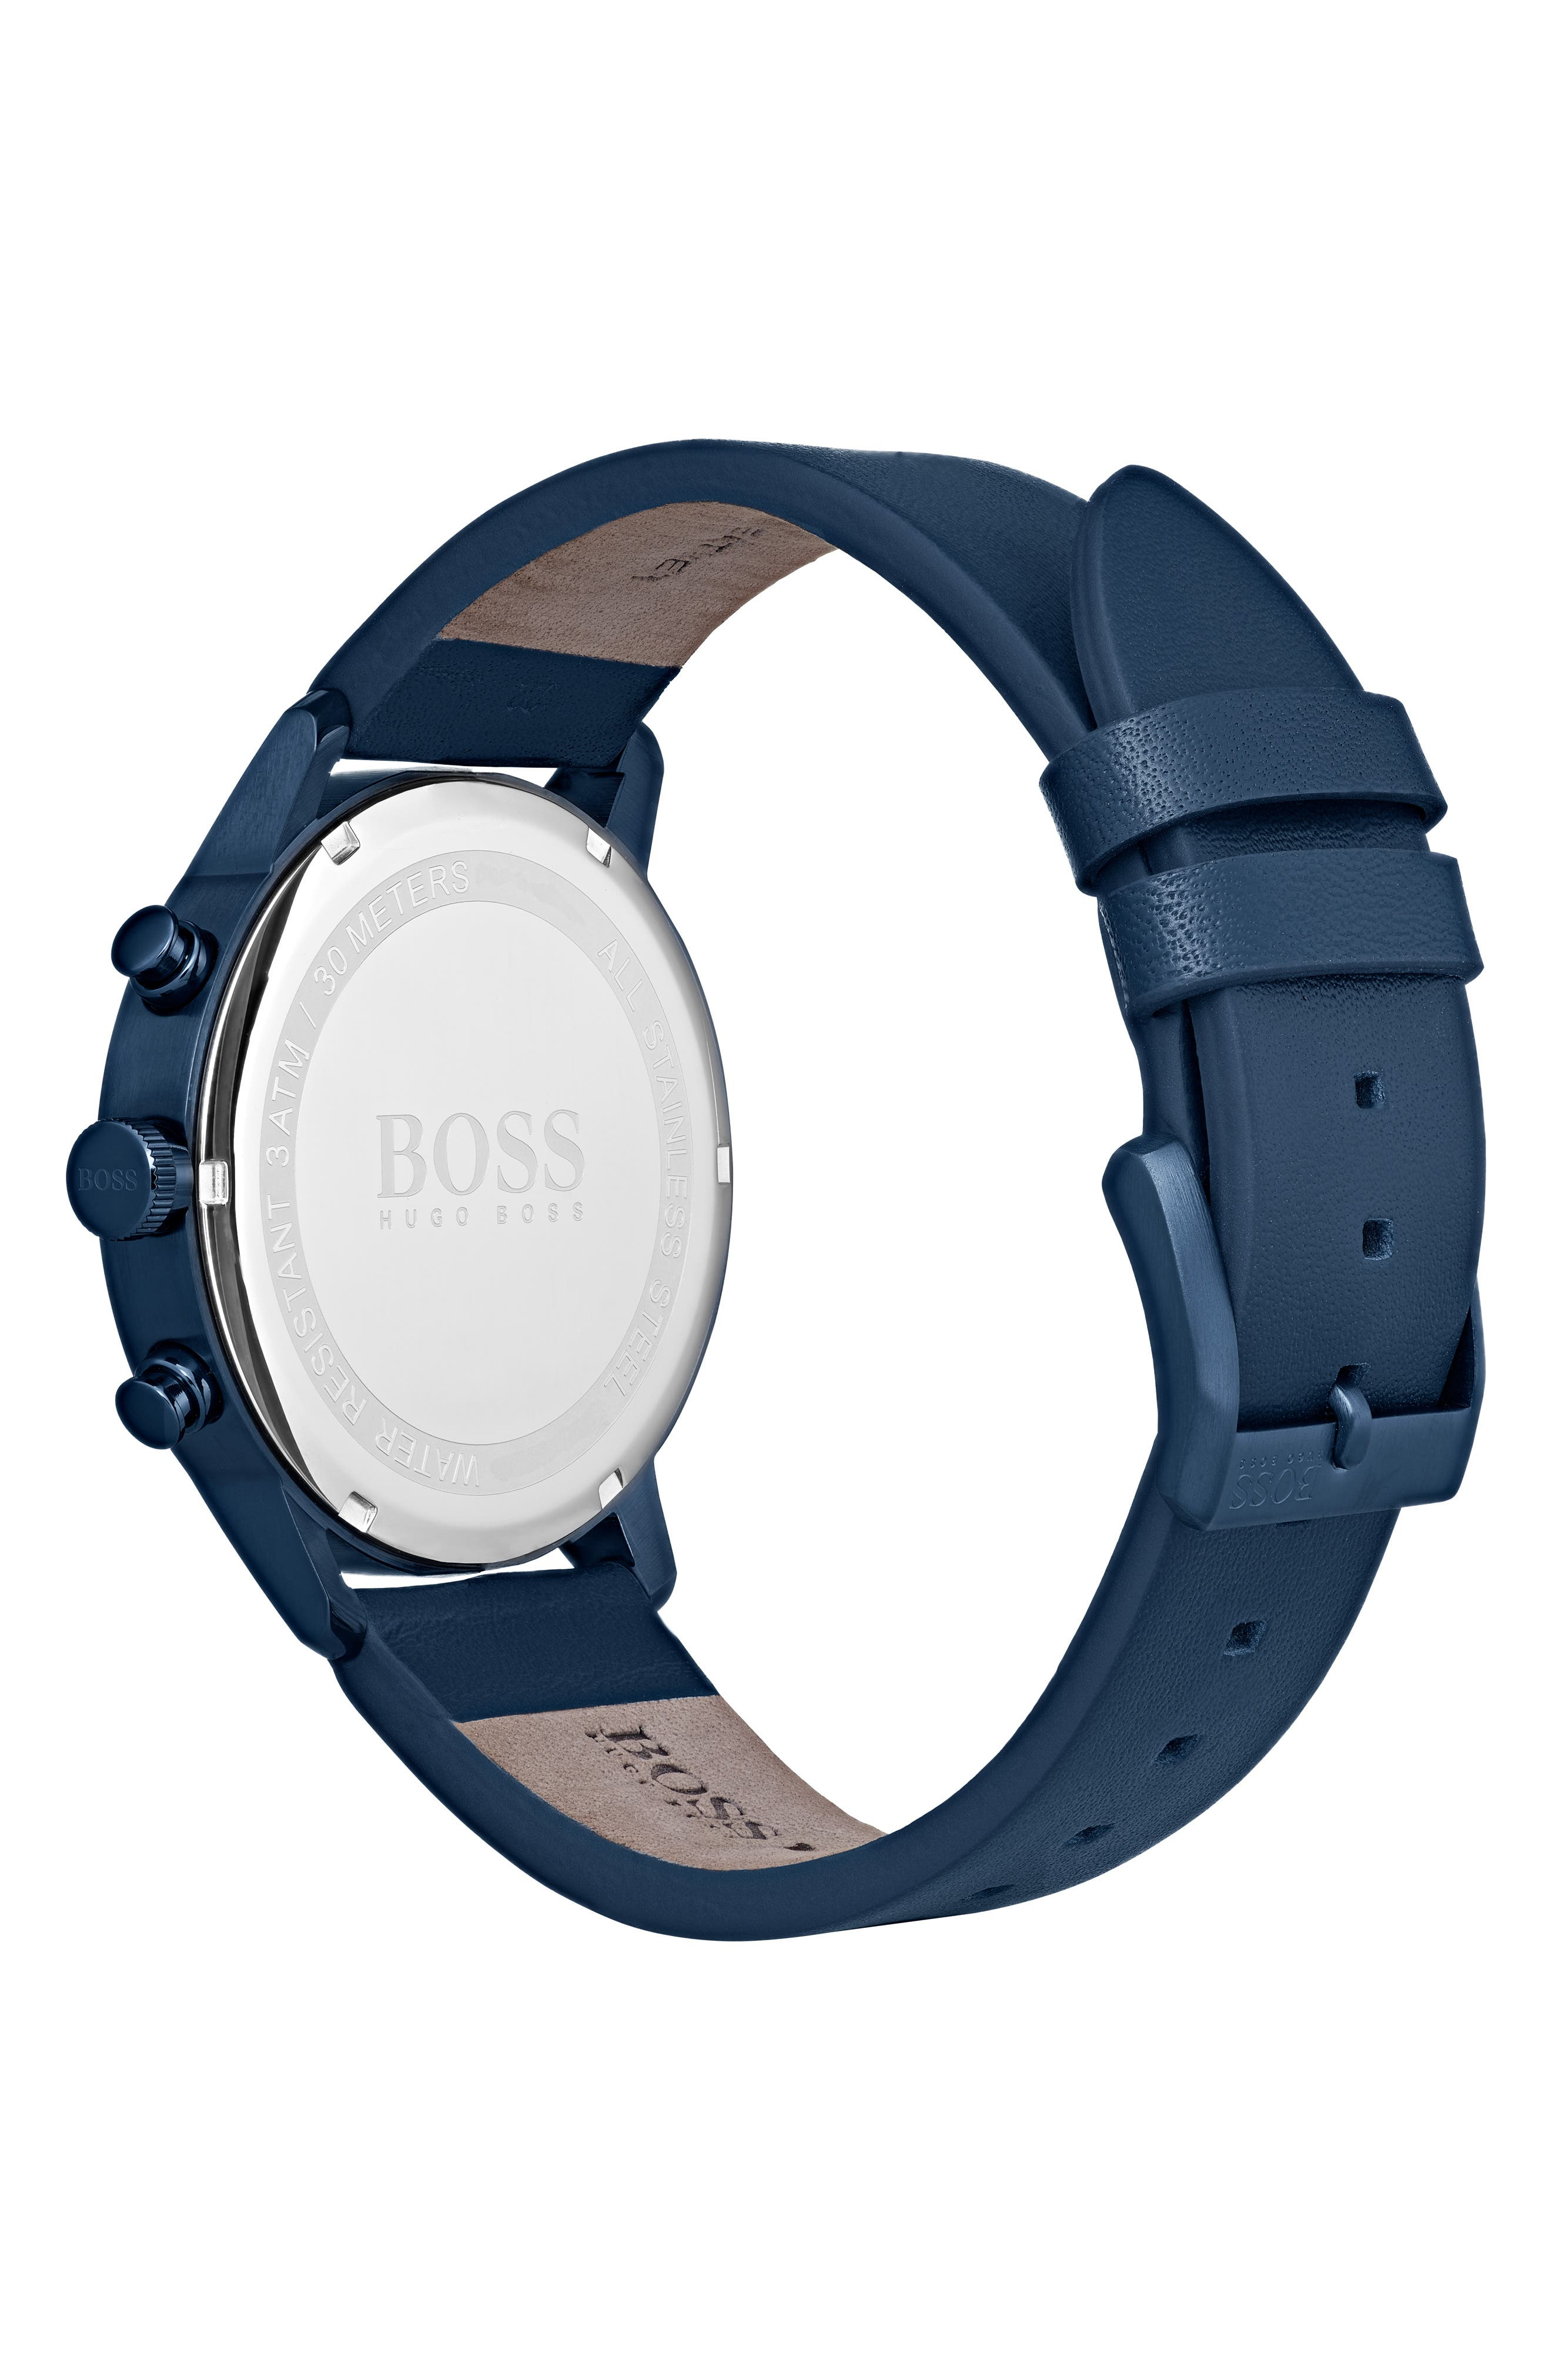 Architectural Chronograph Leather Strap Watch, 44mm,                             Alternate thumbnail 2, color,                             NAVY/ NAVY